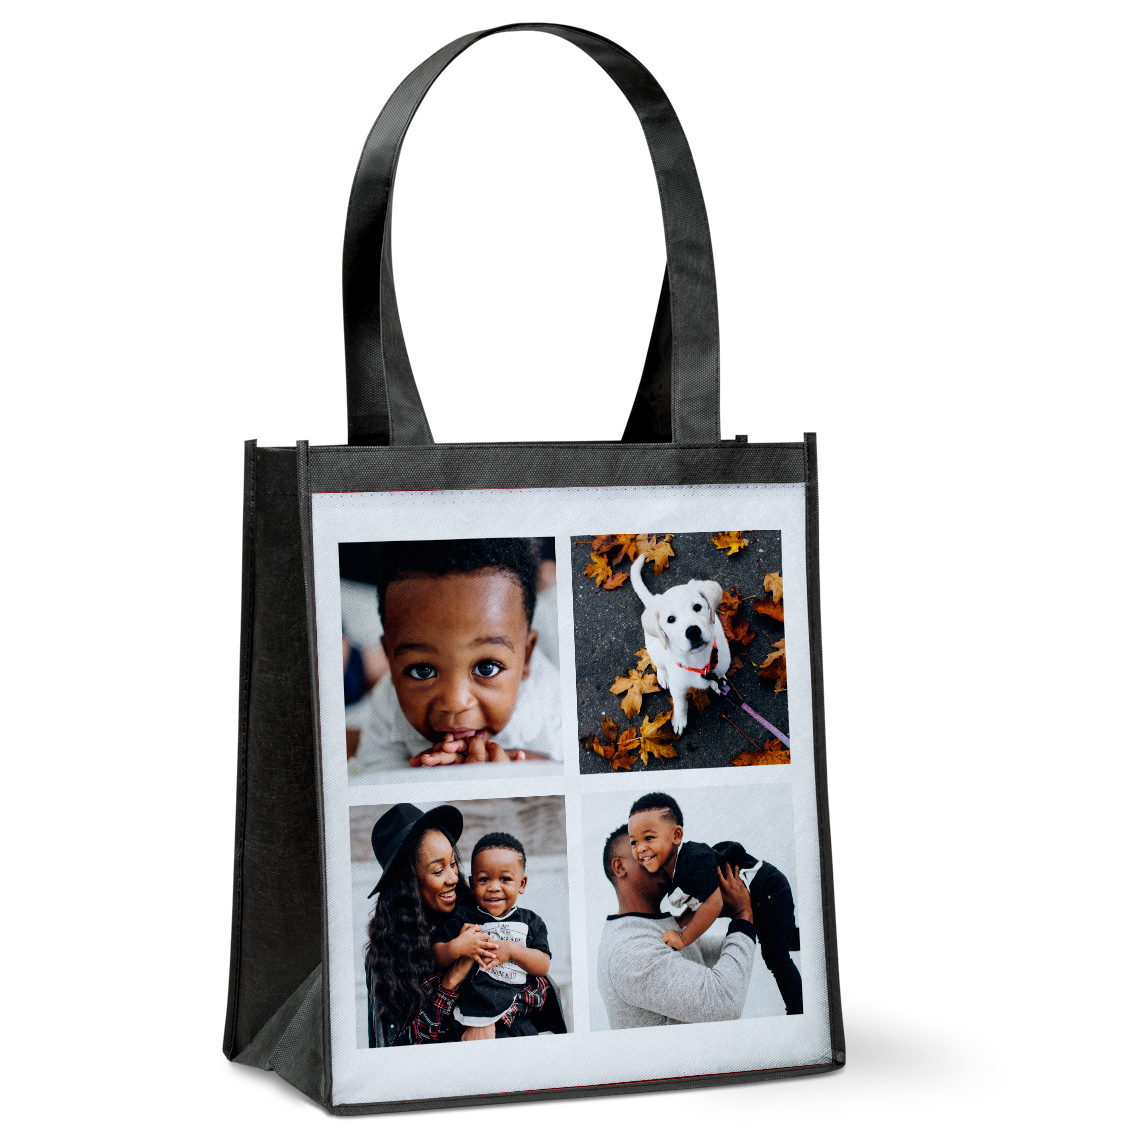 Collage Photo Reusable Grocery Tote Bag